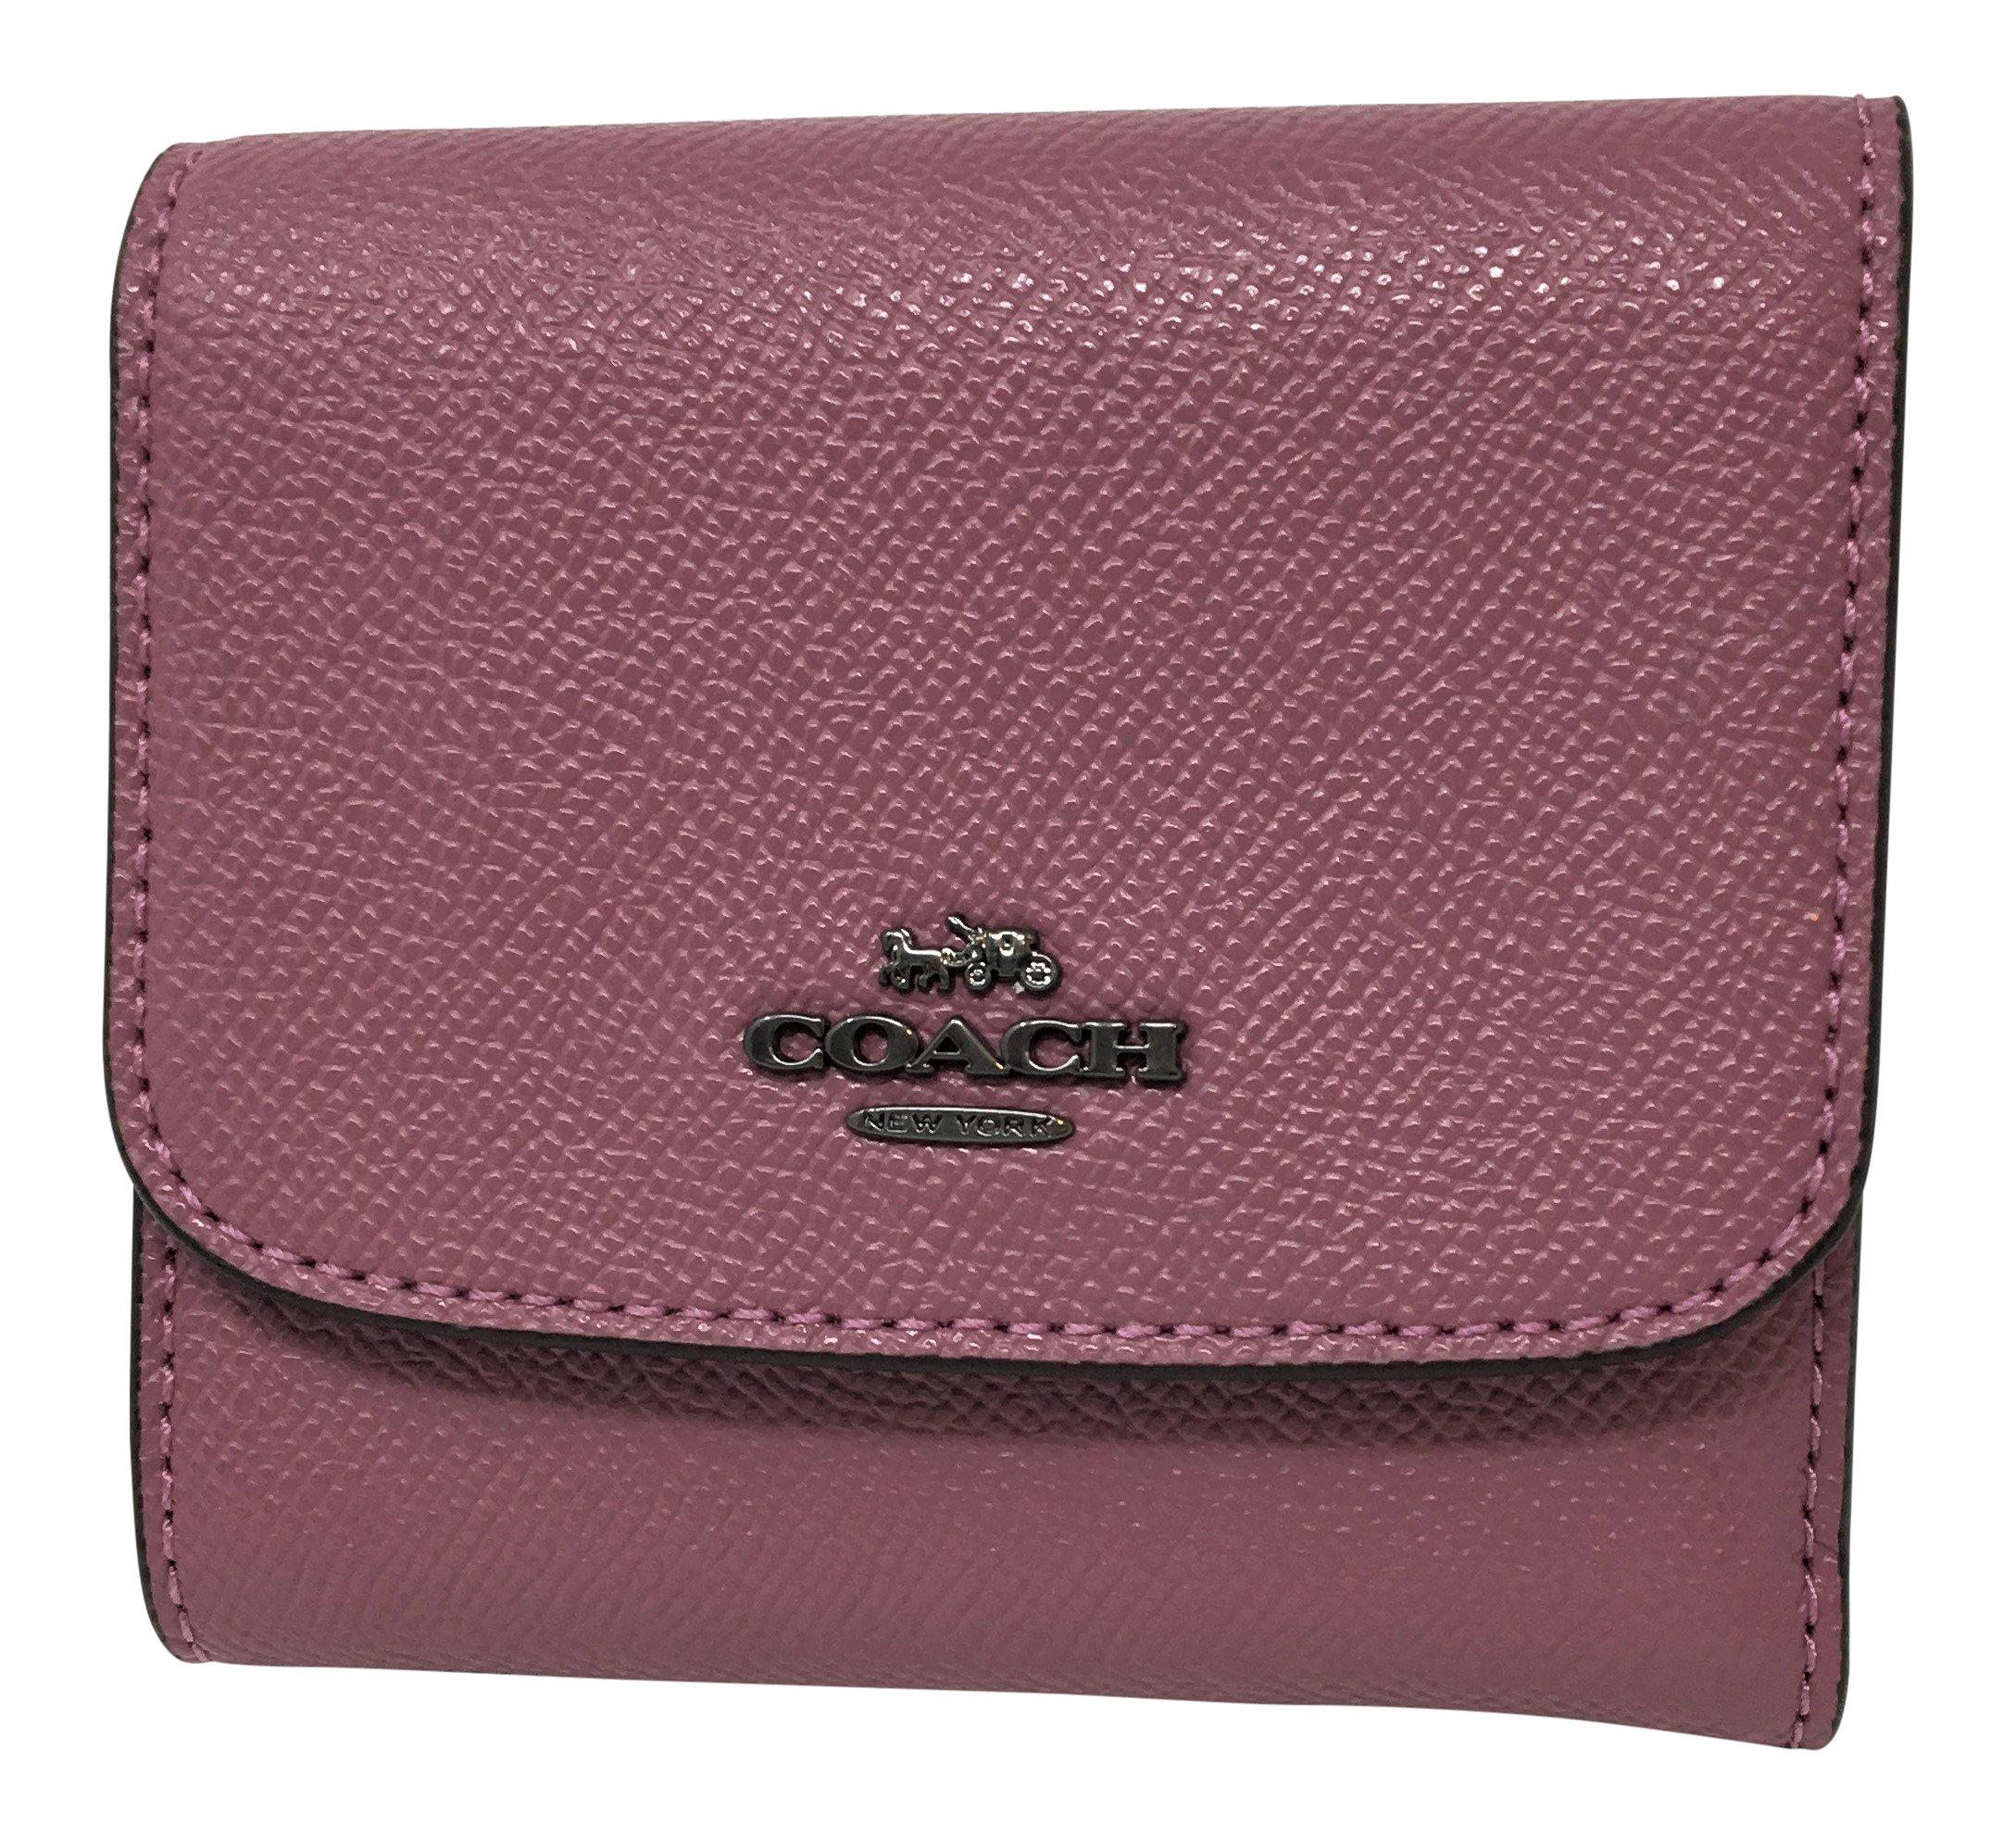 Coach Woman's Crossgrain Leather Small Wallet with Shark Print Interior (Azalea)